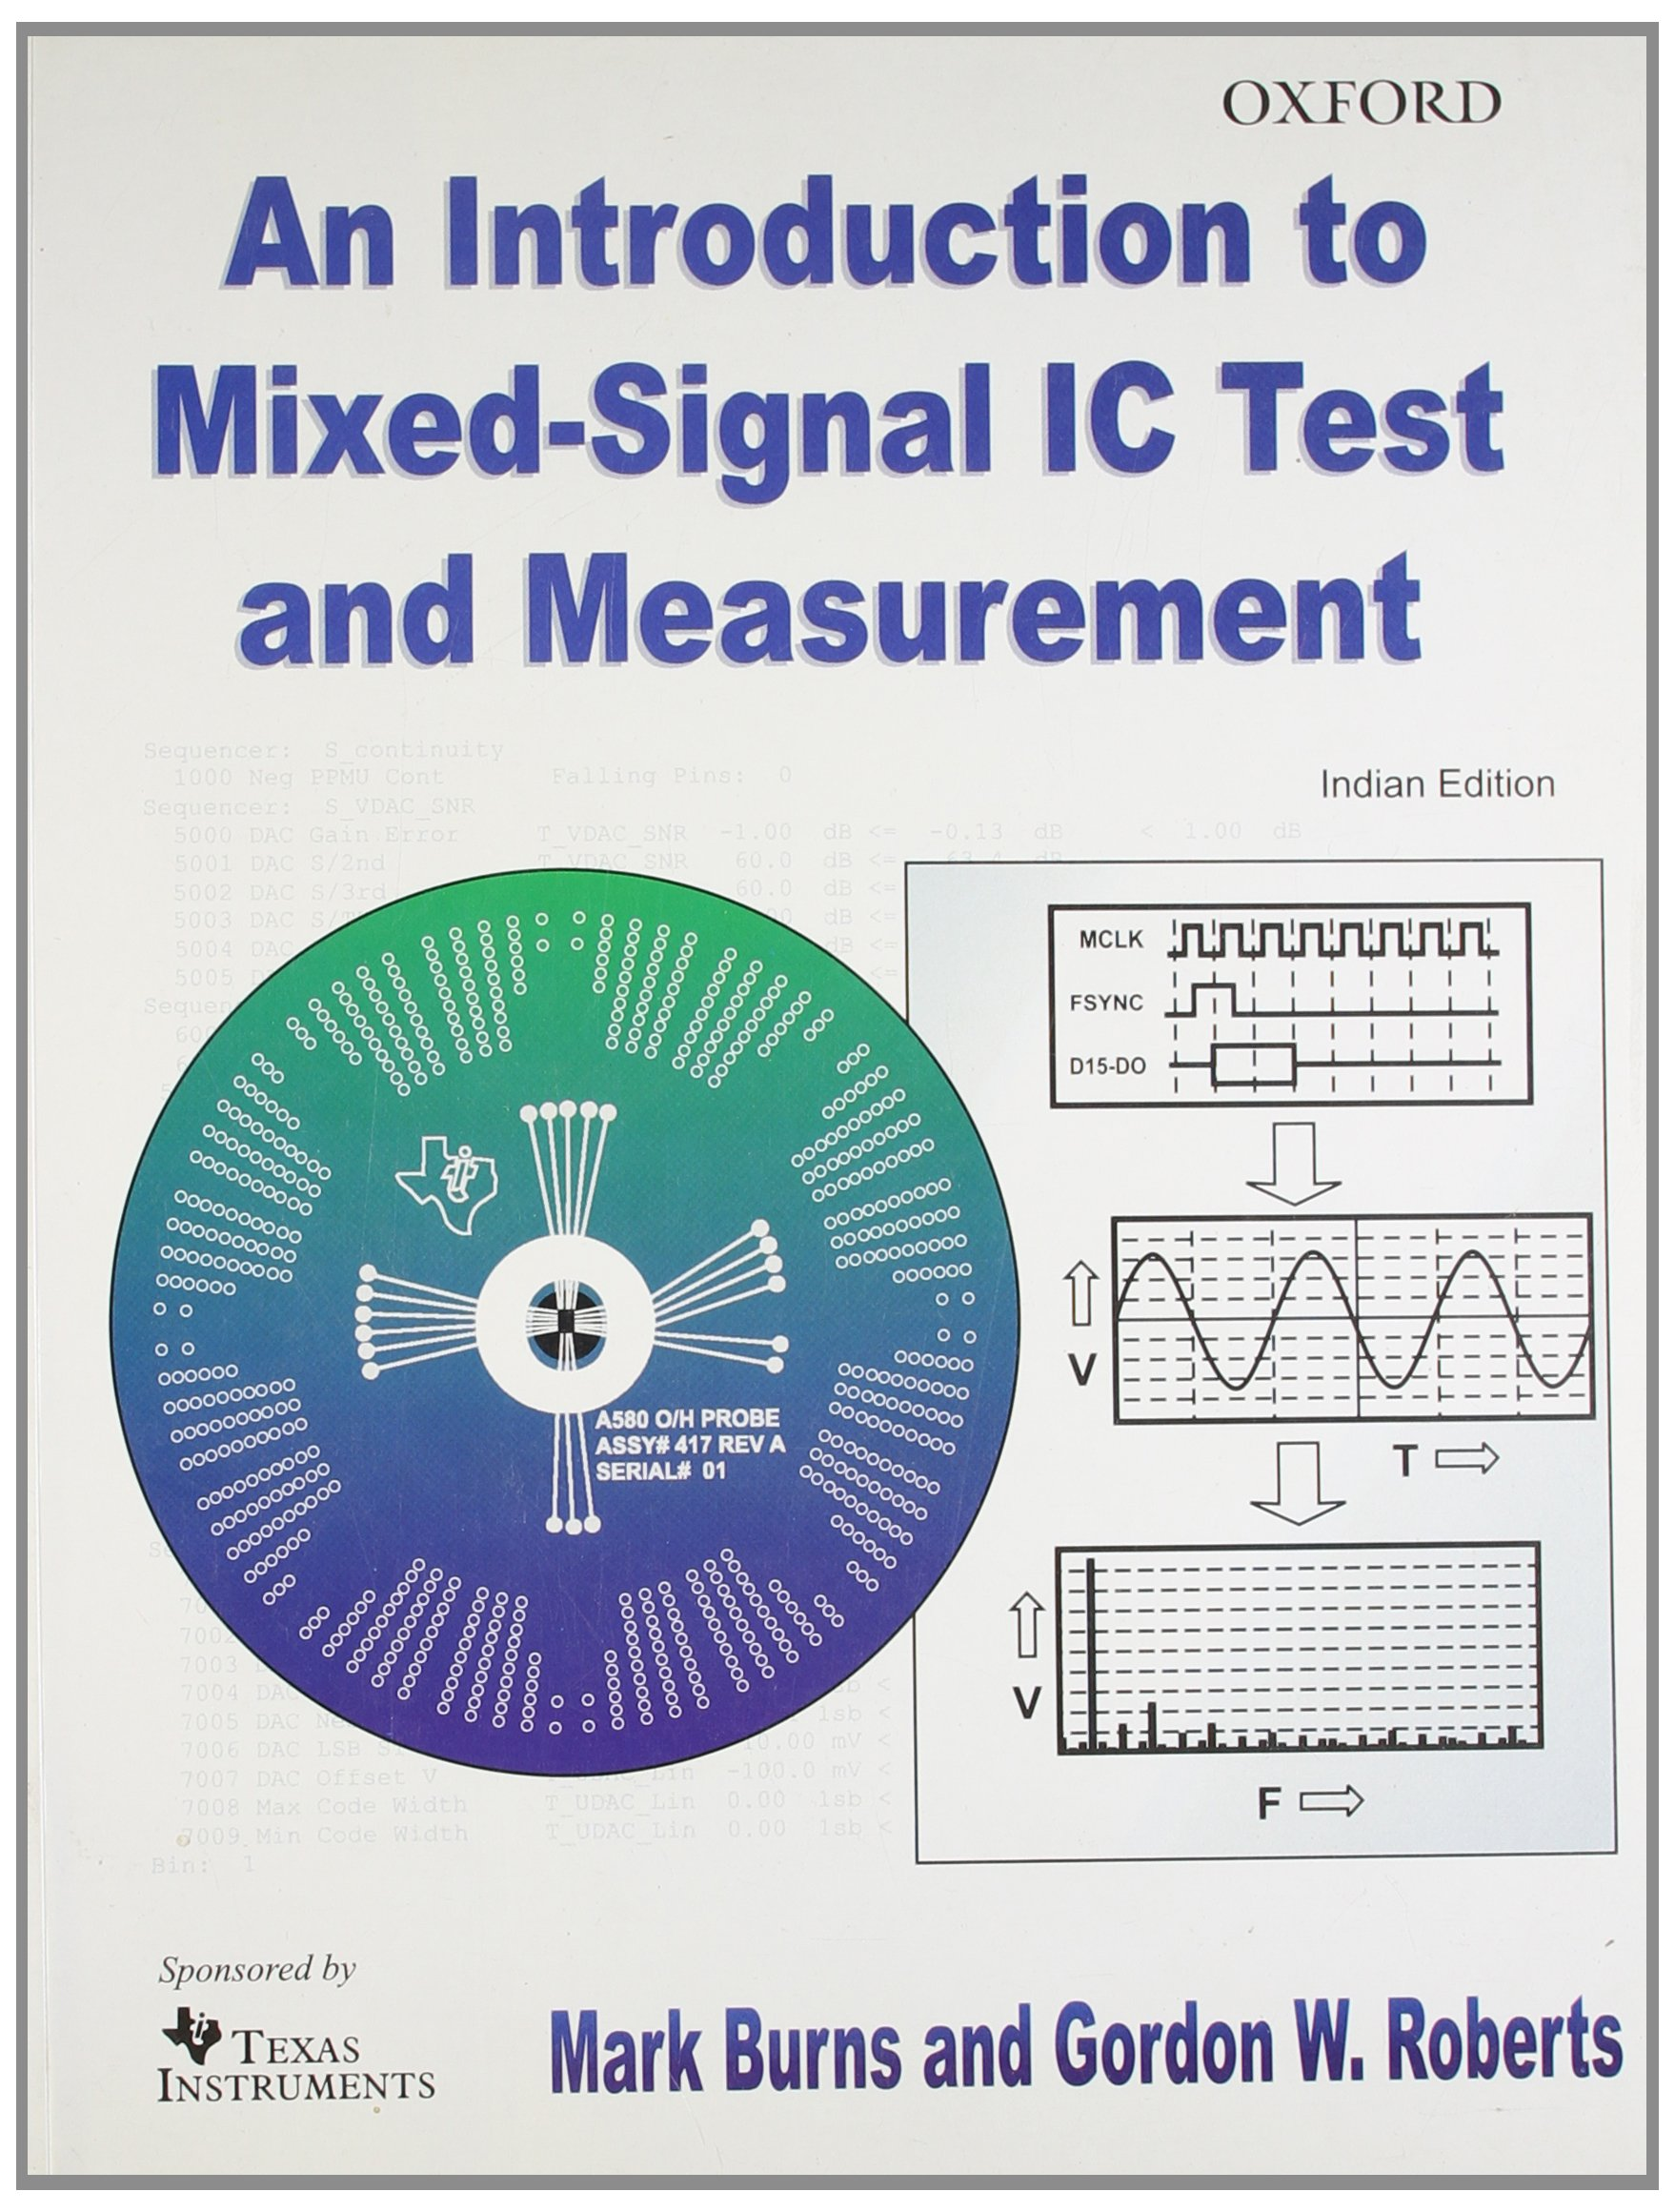 an introduction to mixedsignal ic test and measurement